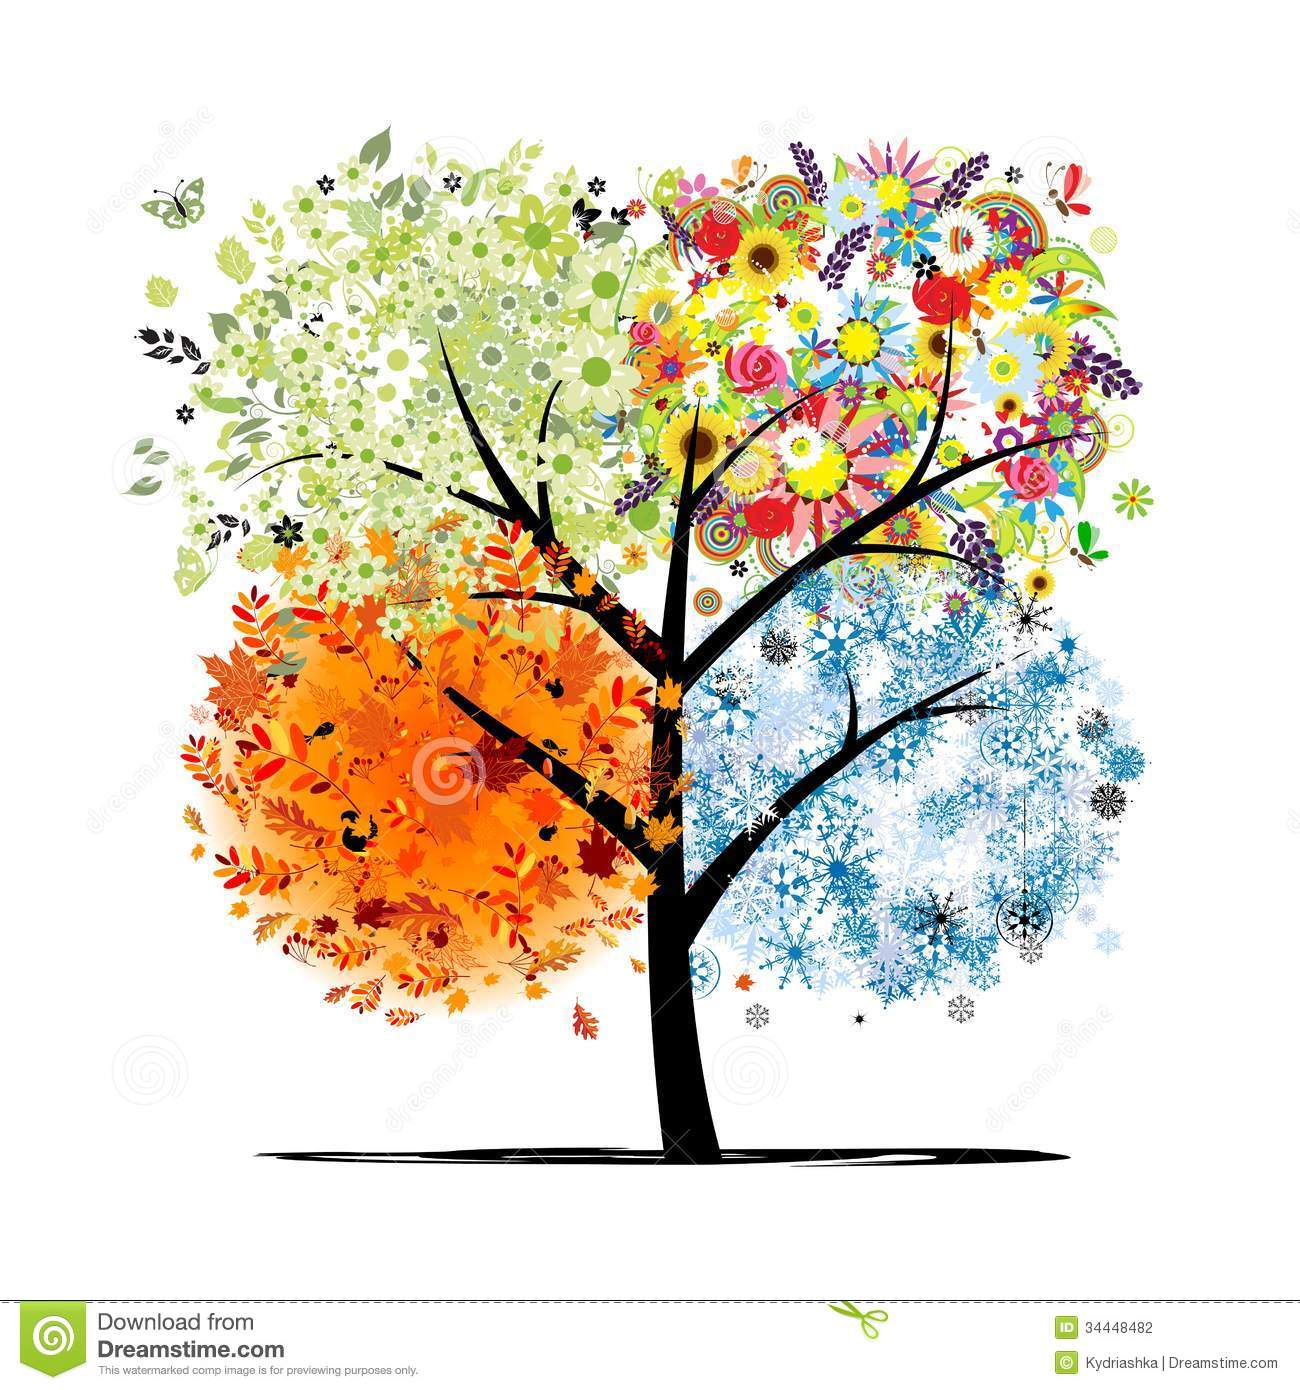 Herbst Stock Illustrationen Vektors Klipart 368 702 Stock